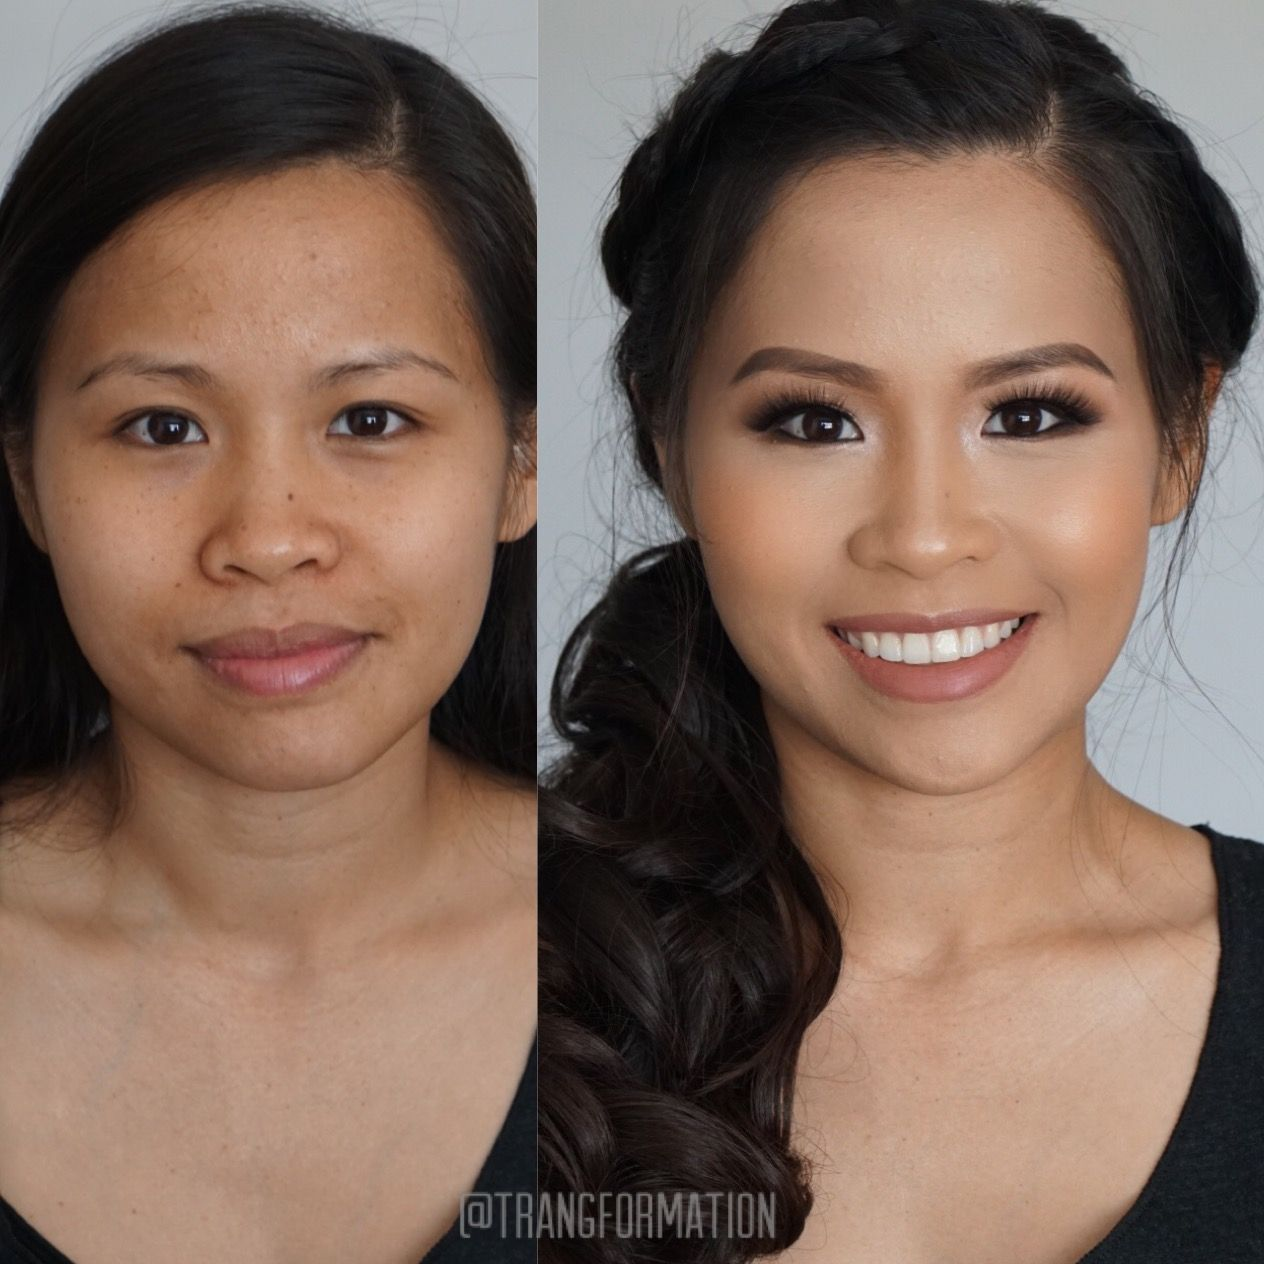 51 best before and after images in 2020 | bridal makeup